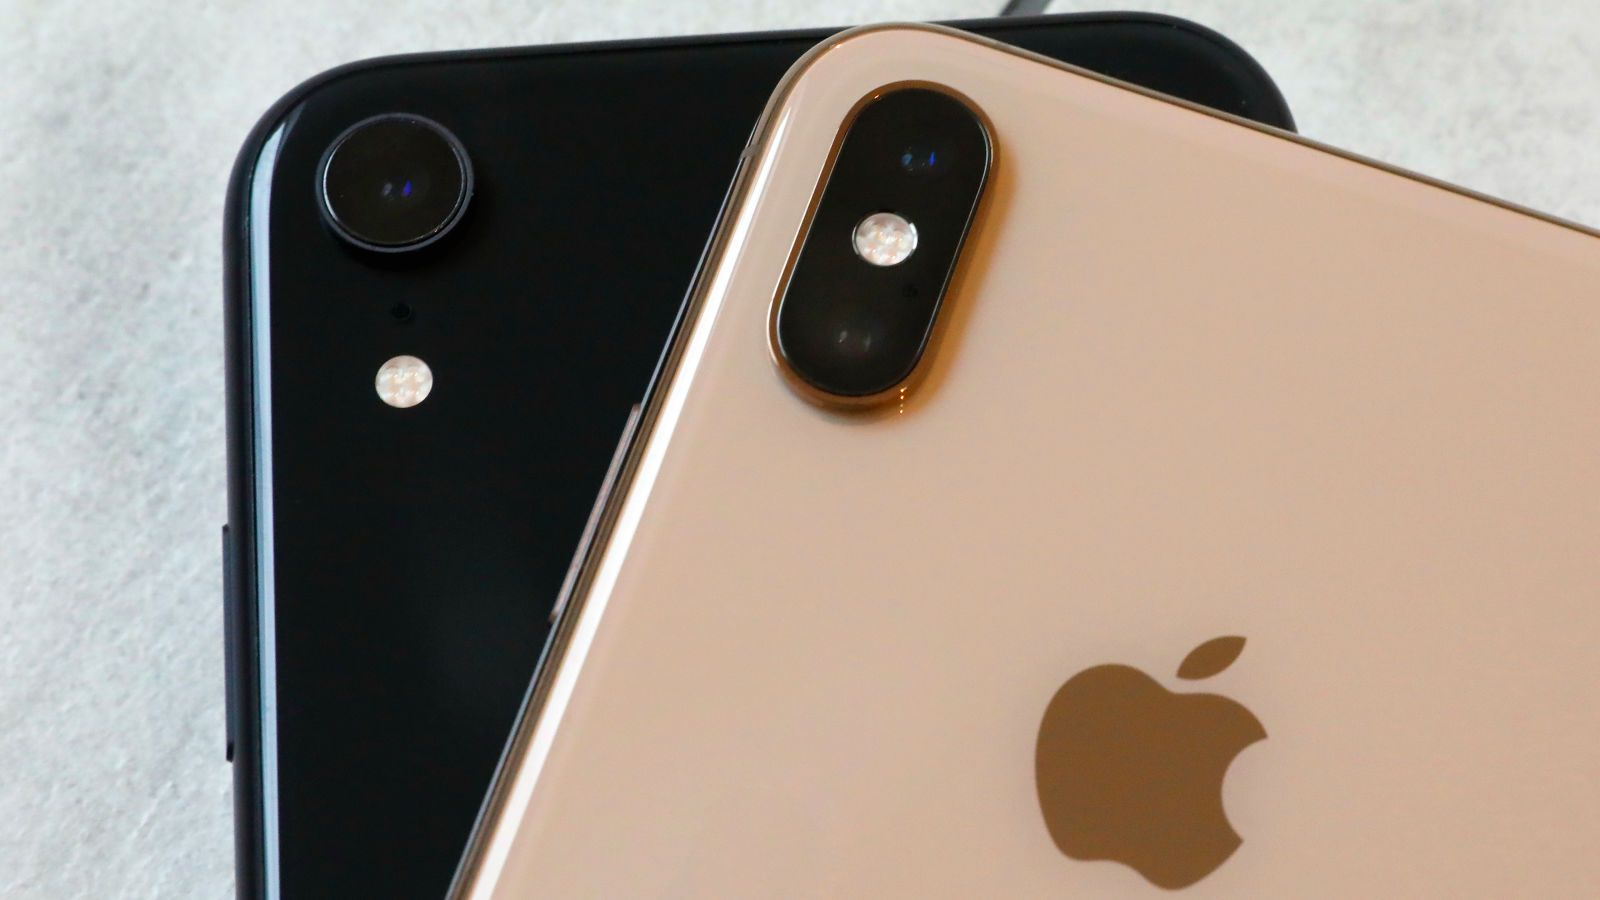 Some iPhone Apps May Be Recording Users' Screens Without